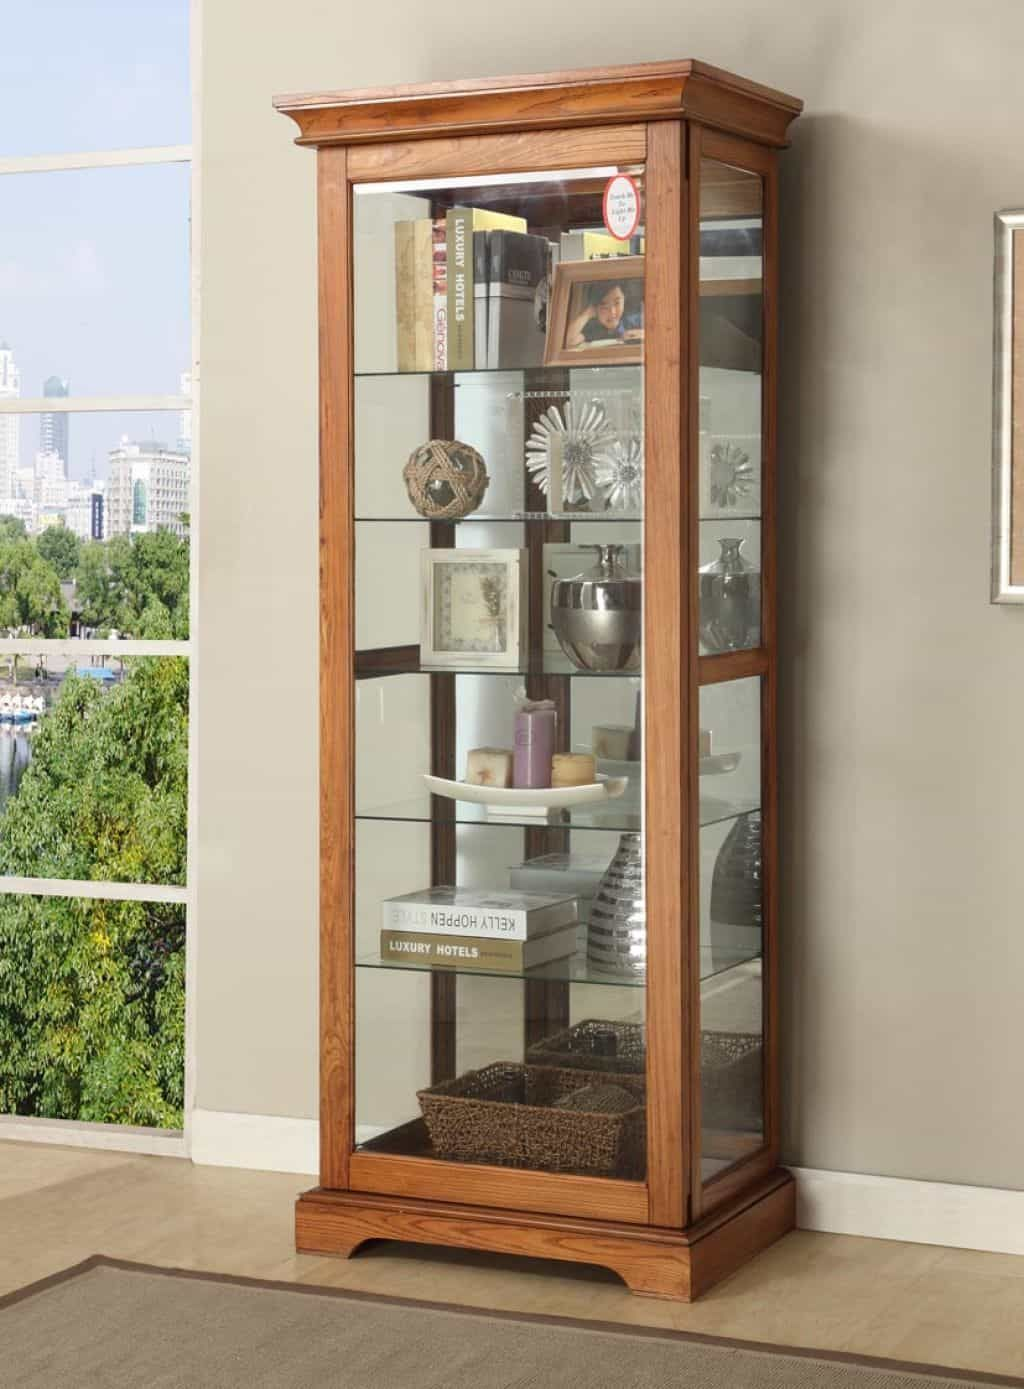 These Cabinets Are Specially Crafted To Hold Collectibles Art Objects Memorabilia And Stuffs That Contribute A Common Idea